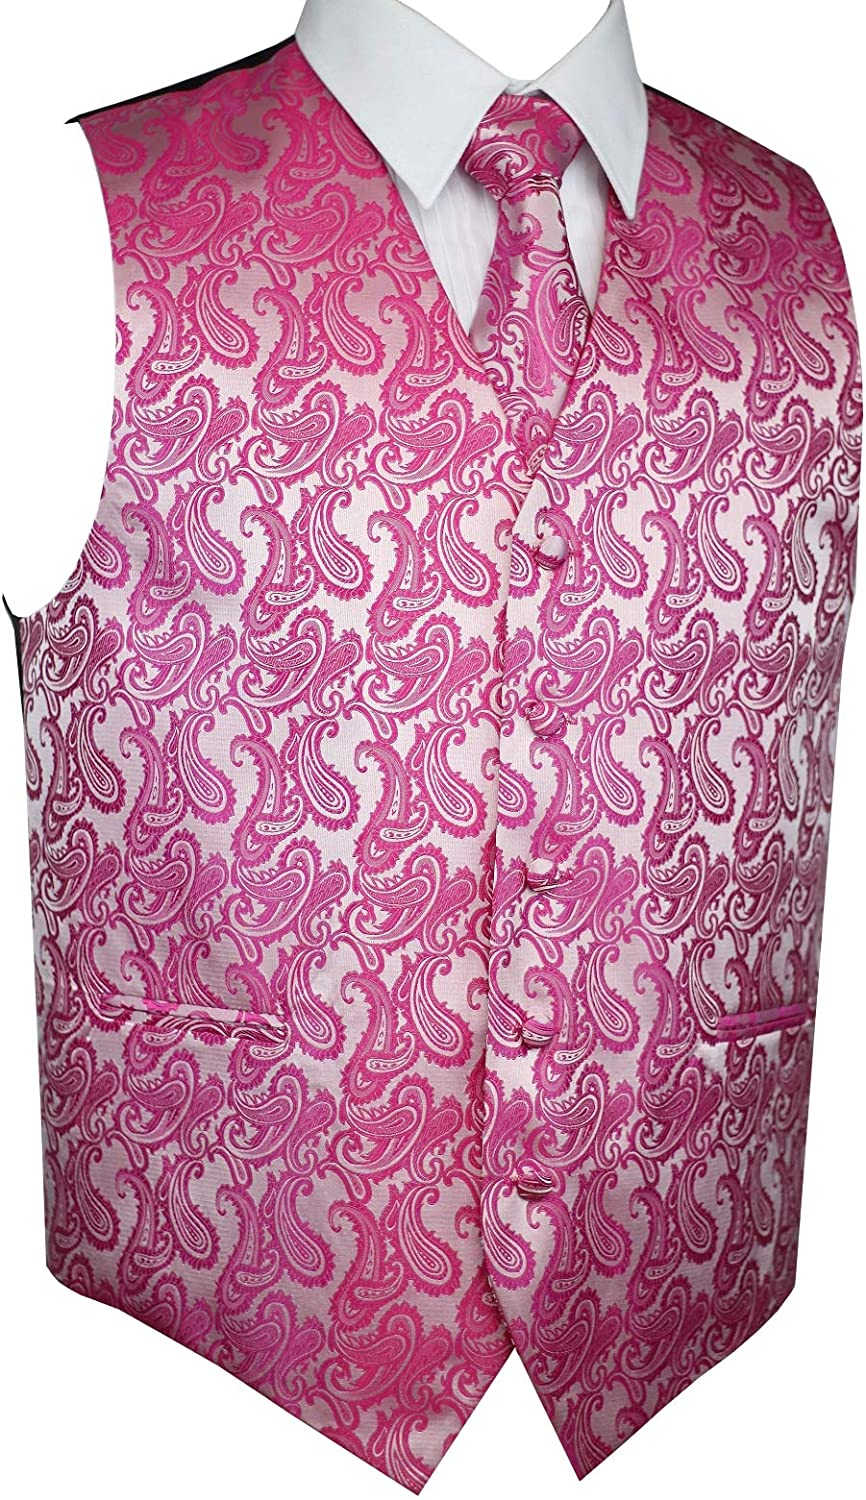 Brand Q Mens Formal Prom Wedding Tuxedo Vest Tie /& Hankie in Fuschia Paisley